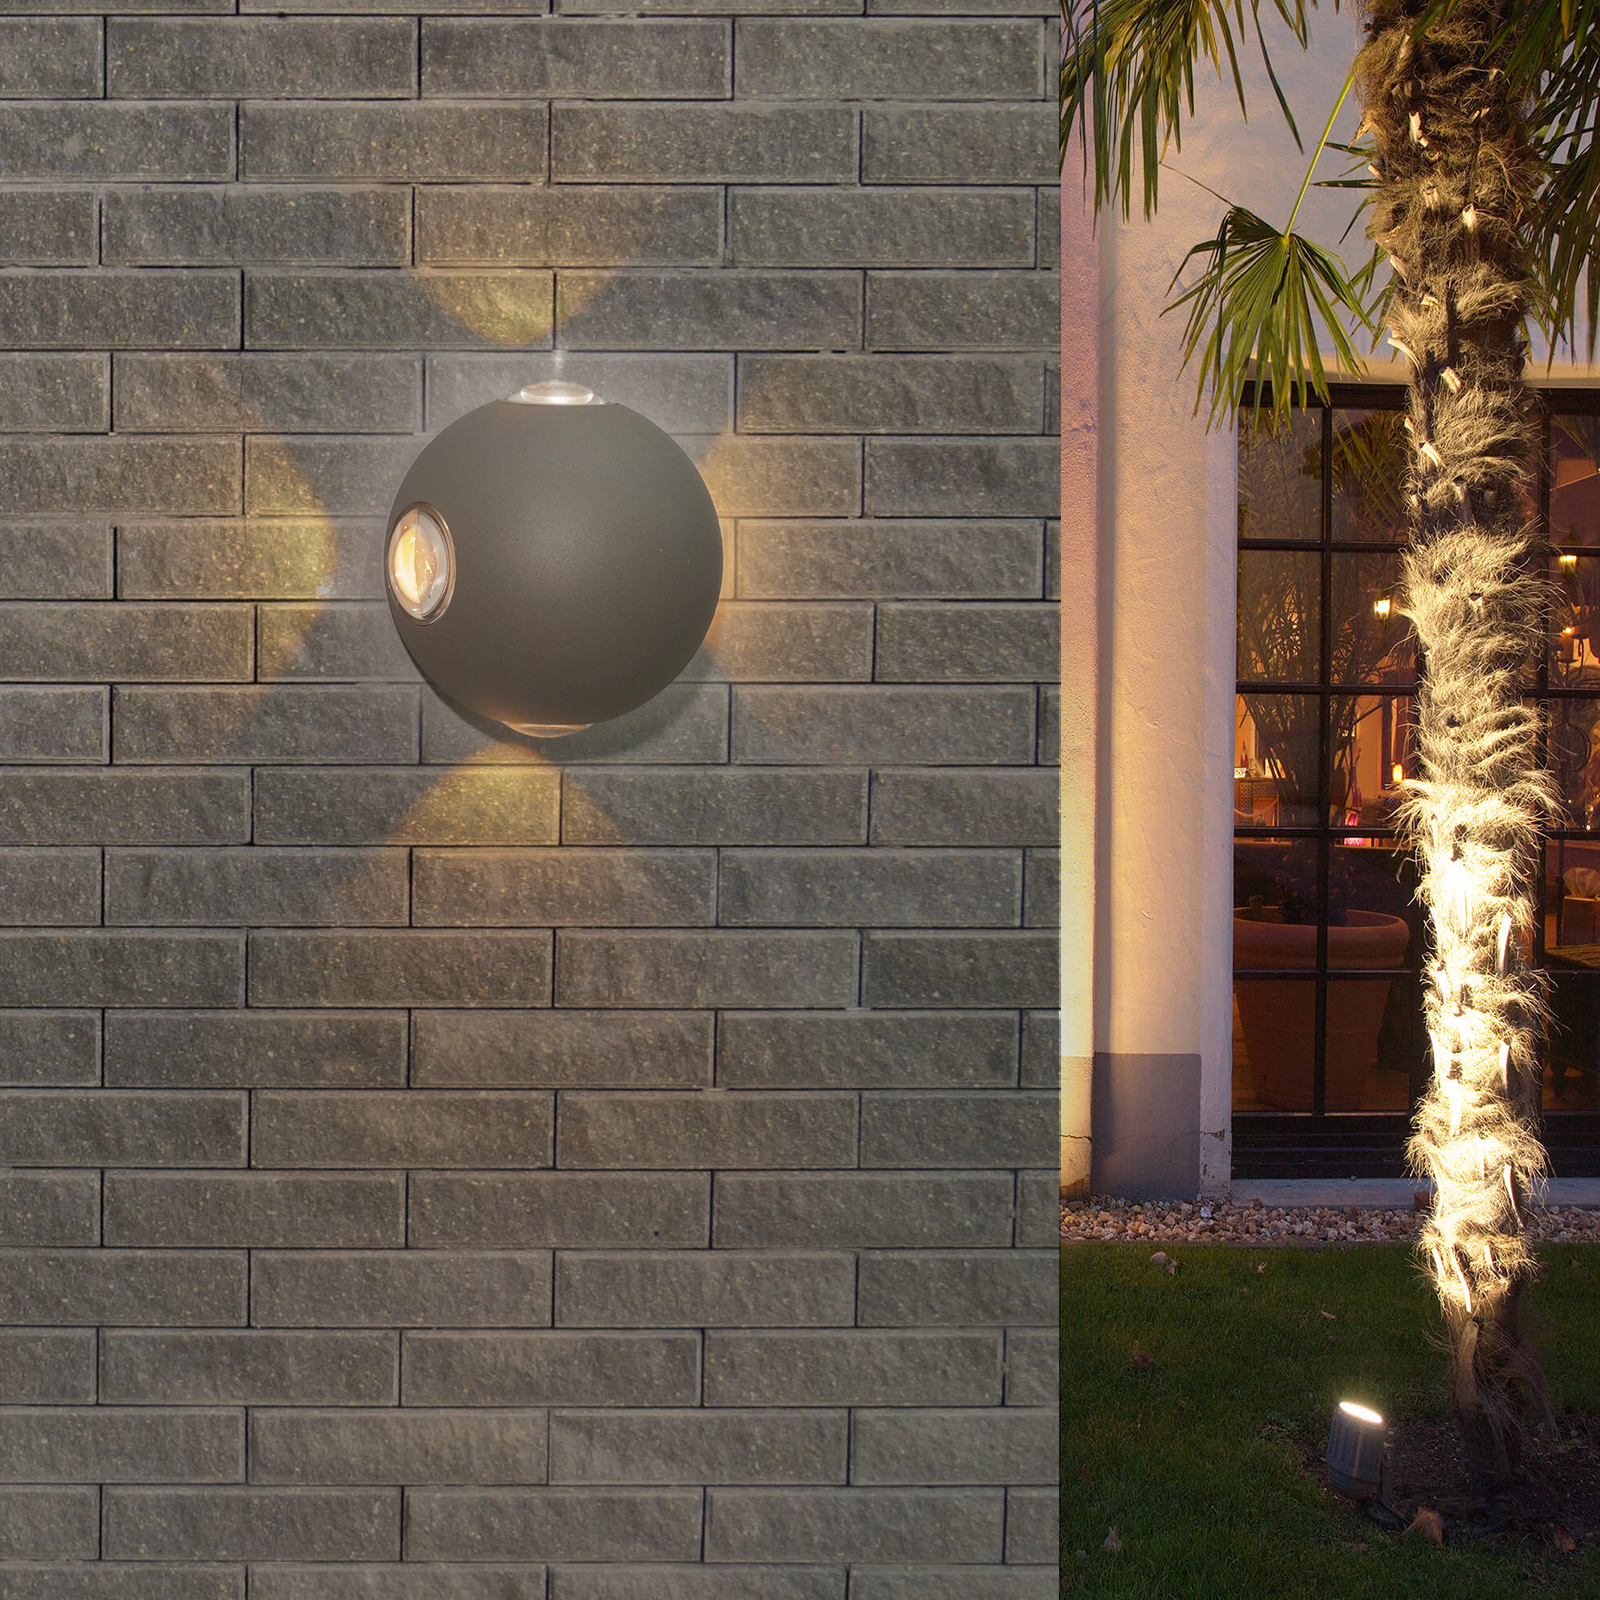 Wall sphere LED applique 10W 4 light beams cross decorative lamp IP65 230V